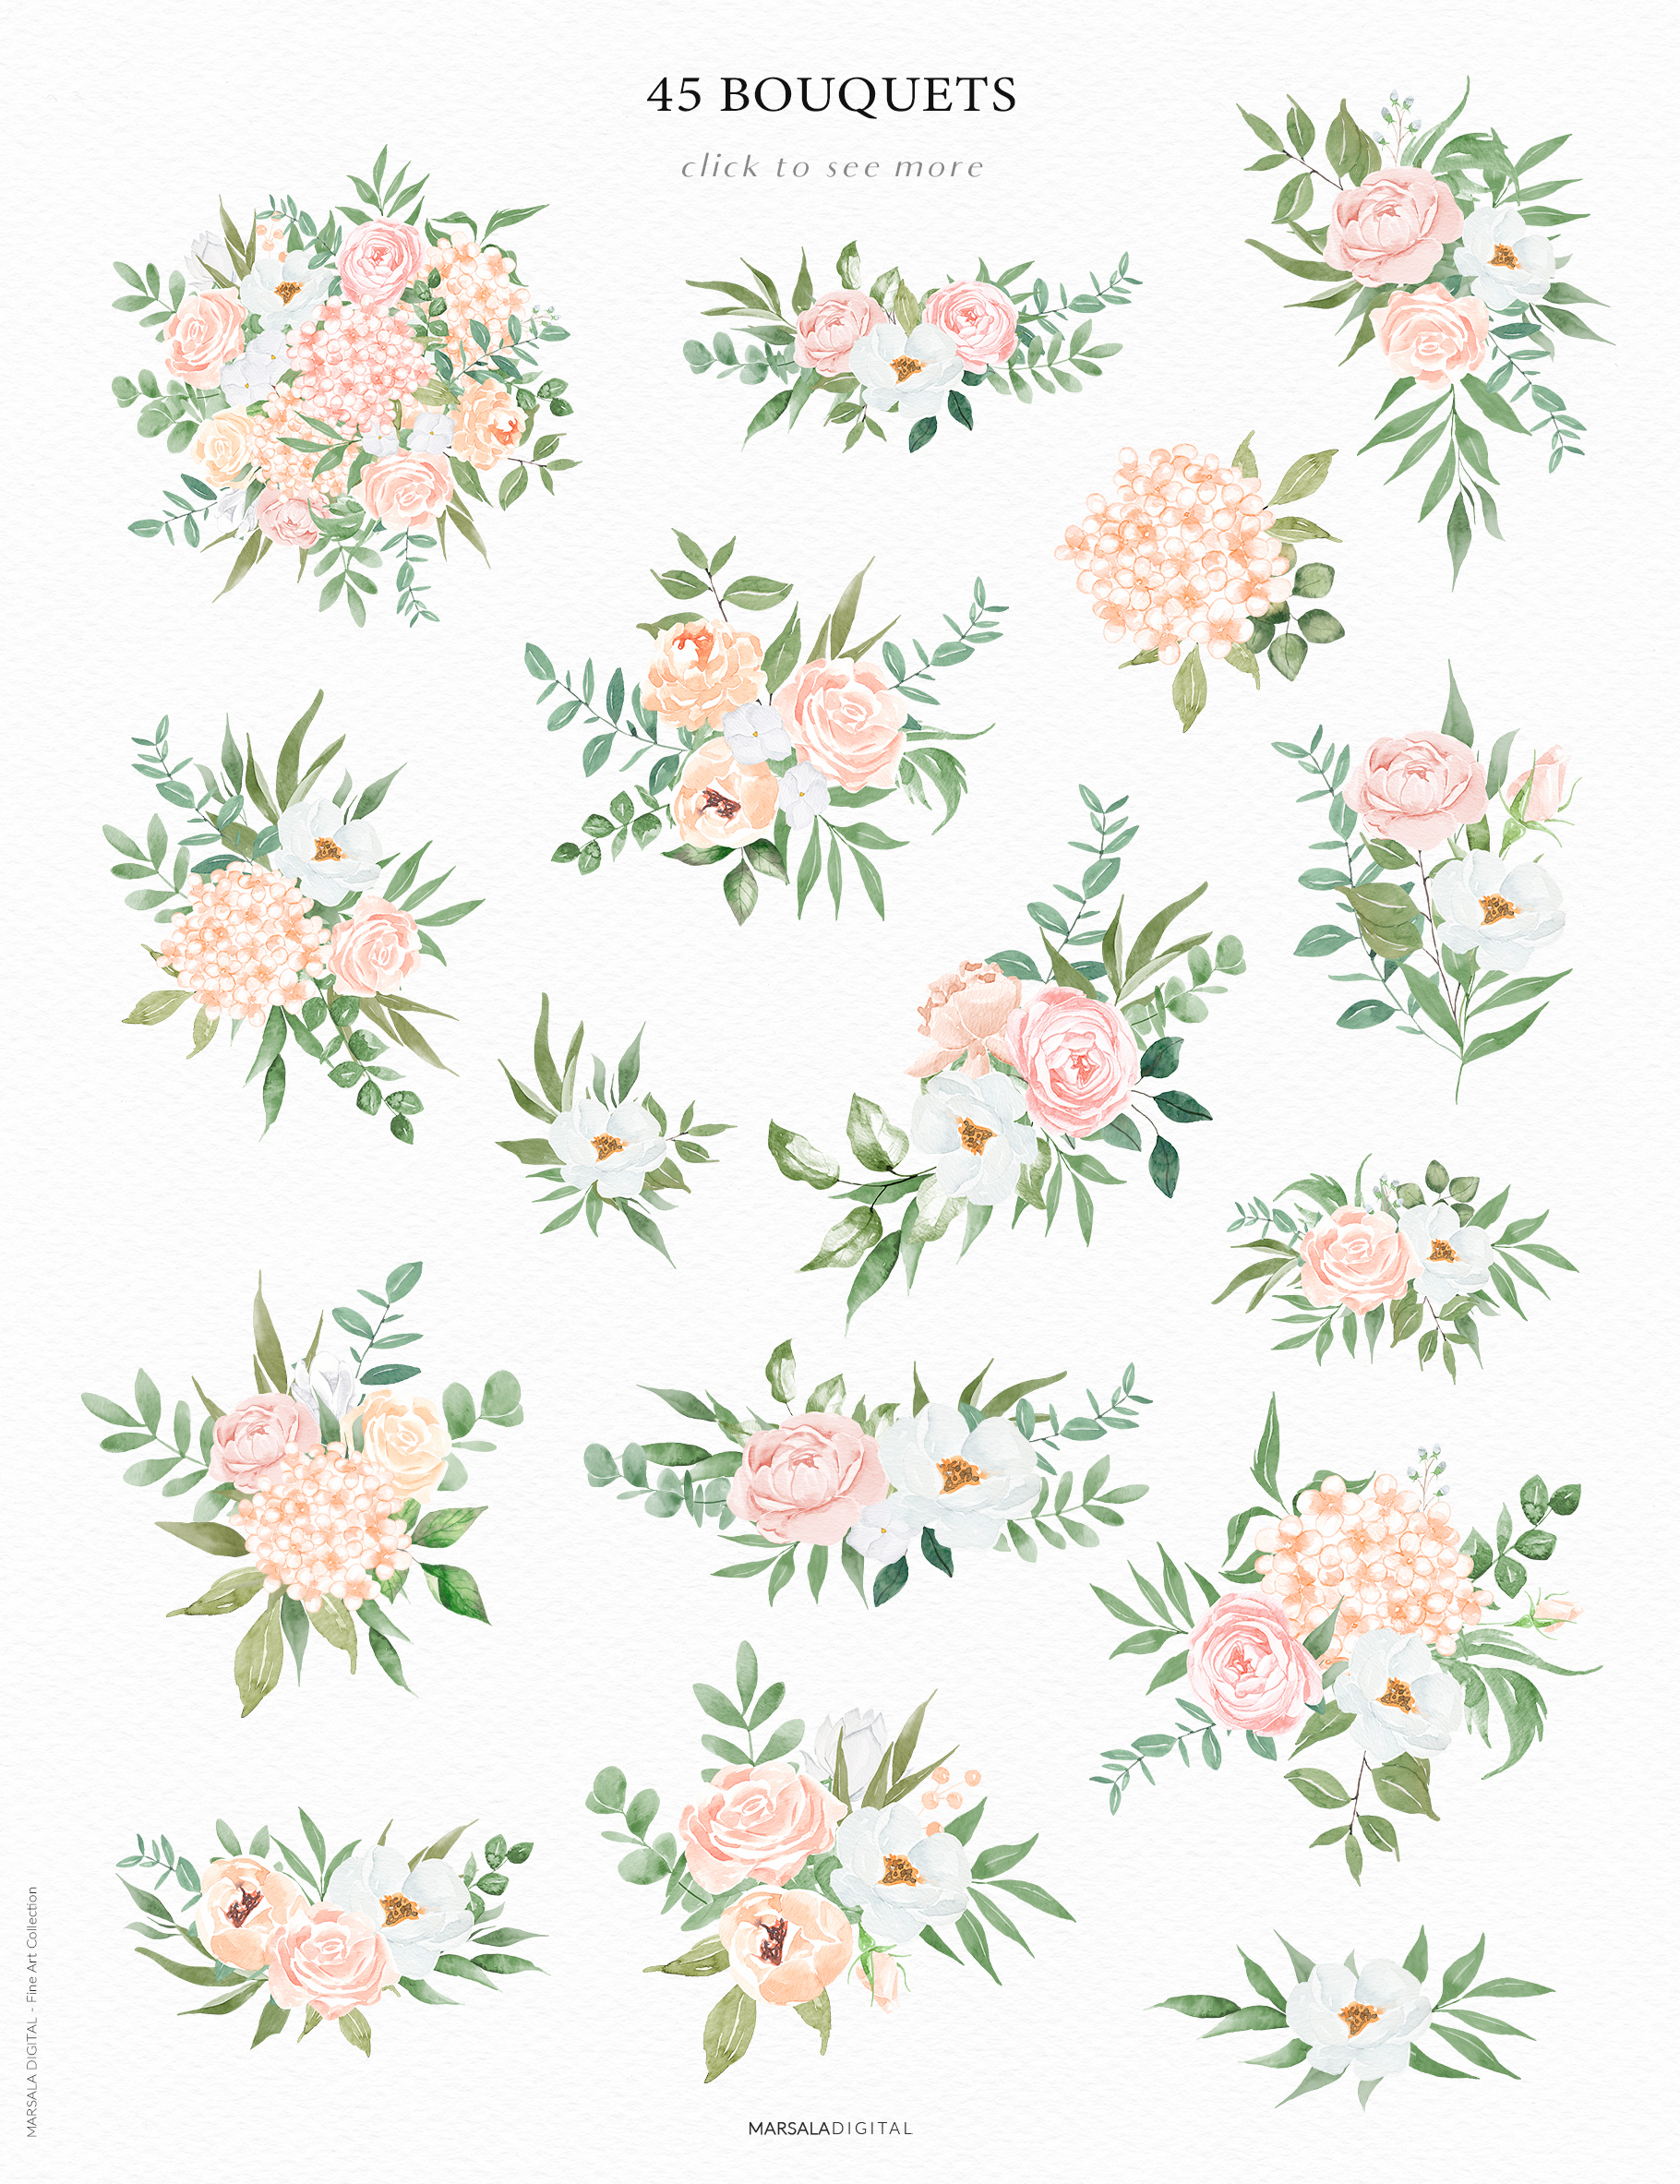 Watercolor Flowers Watercolor Florals Peach & White example image 2